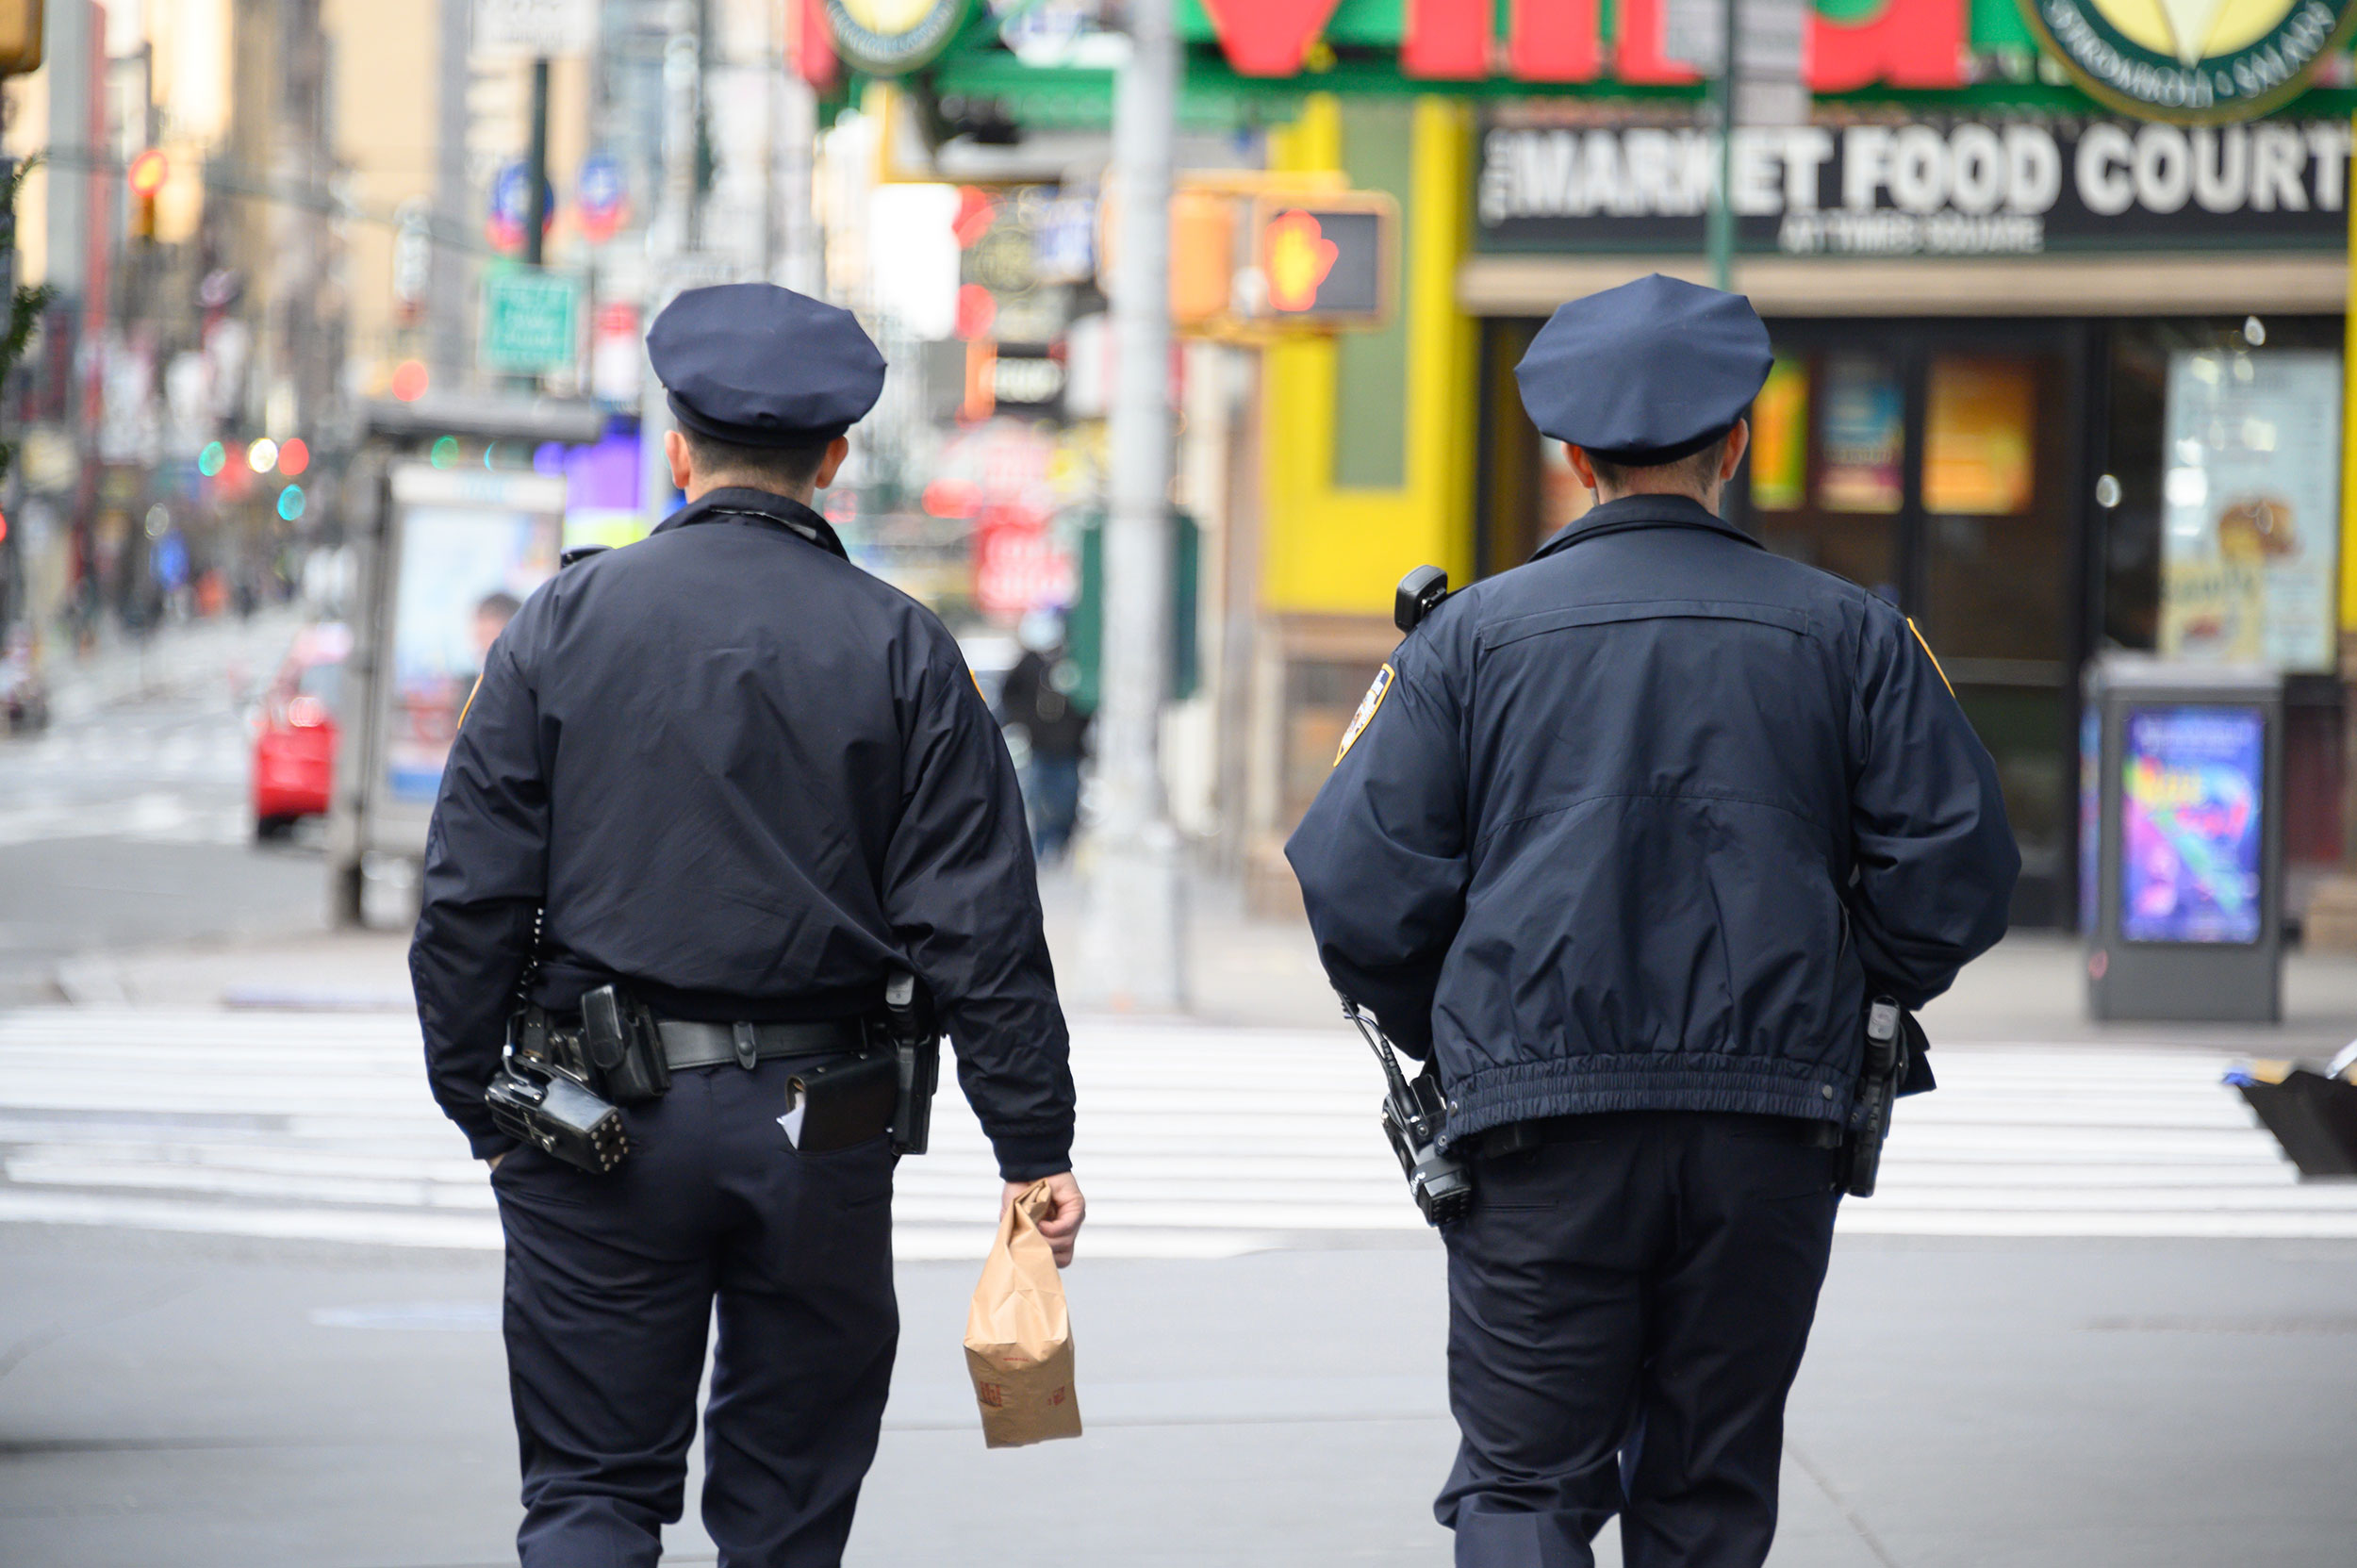 Two NYPD officers walk through Times Square on March 22.